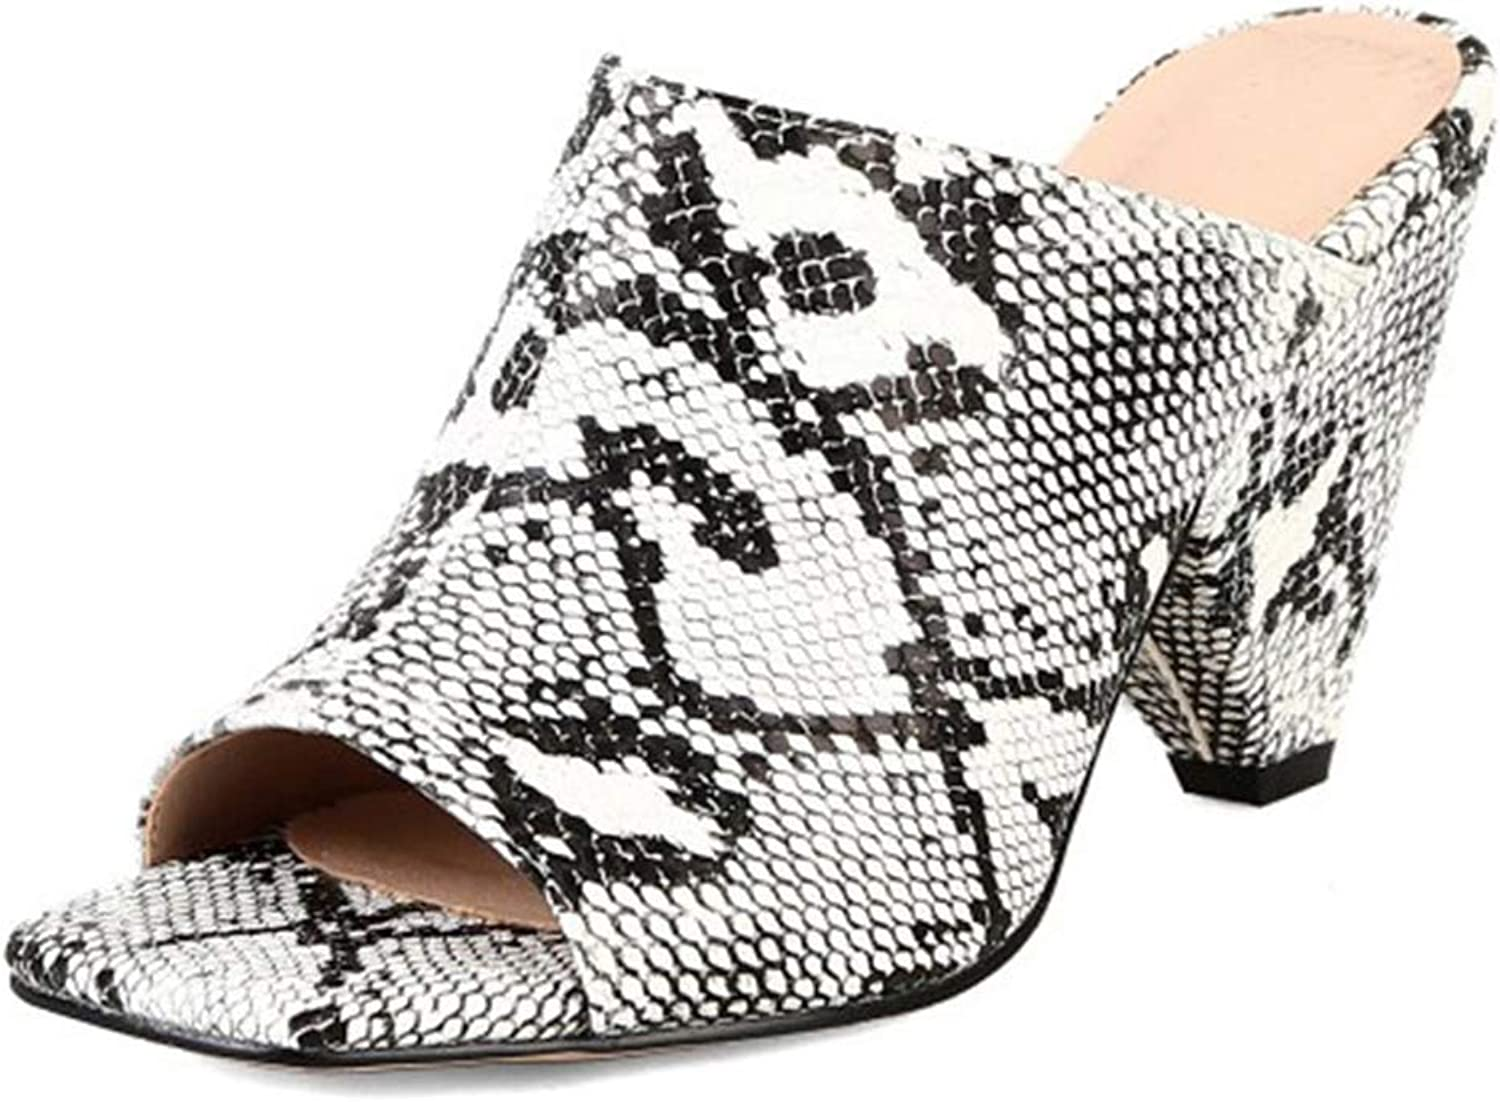 Snake Mules Slippers Spike Heels High Mules shoes Woman shoes Fashion Slides Female,White,9.5